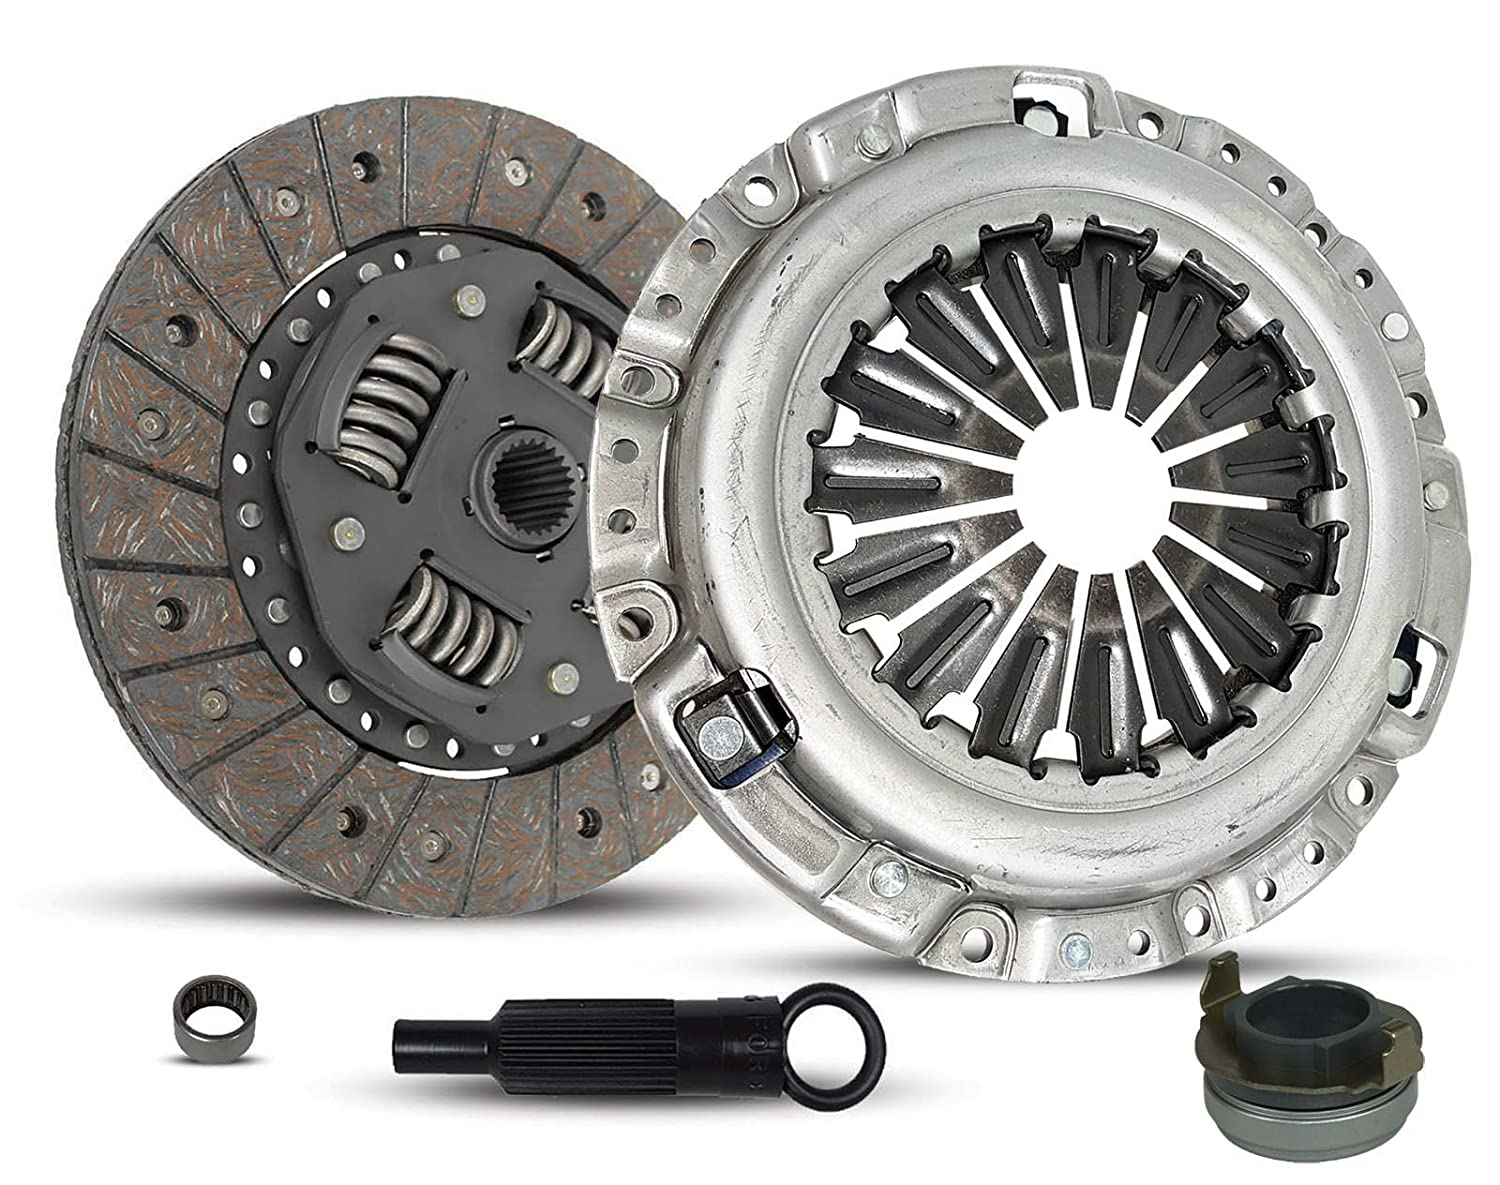 Clutch Kit Mazda 6 S Hatchback Sedan Wagon 2003-2008 3.0L 2968CC 181Cu. In. V6 GAS DOHC Naturally Aspirated Southeast Clutch